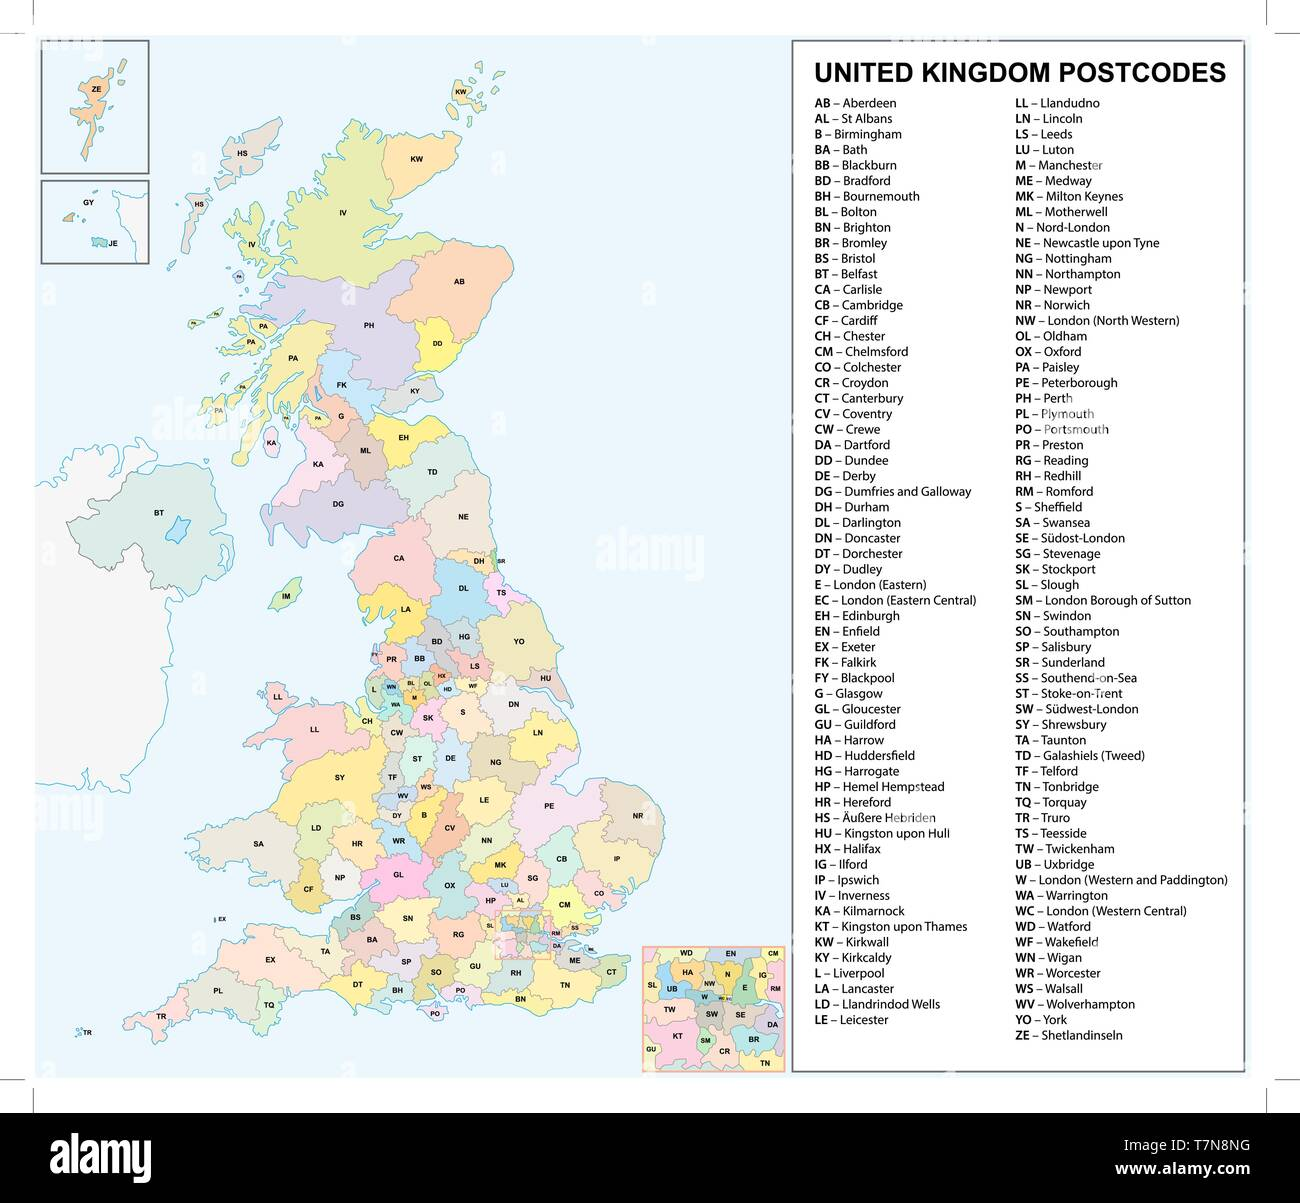 united kingdom Postcodes or postal codes vector map - Stock Image